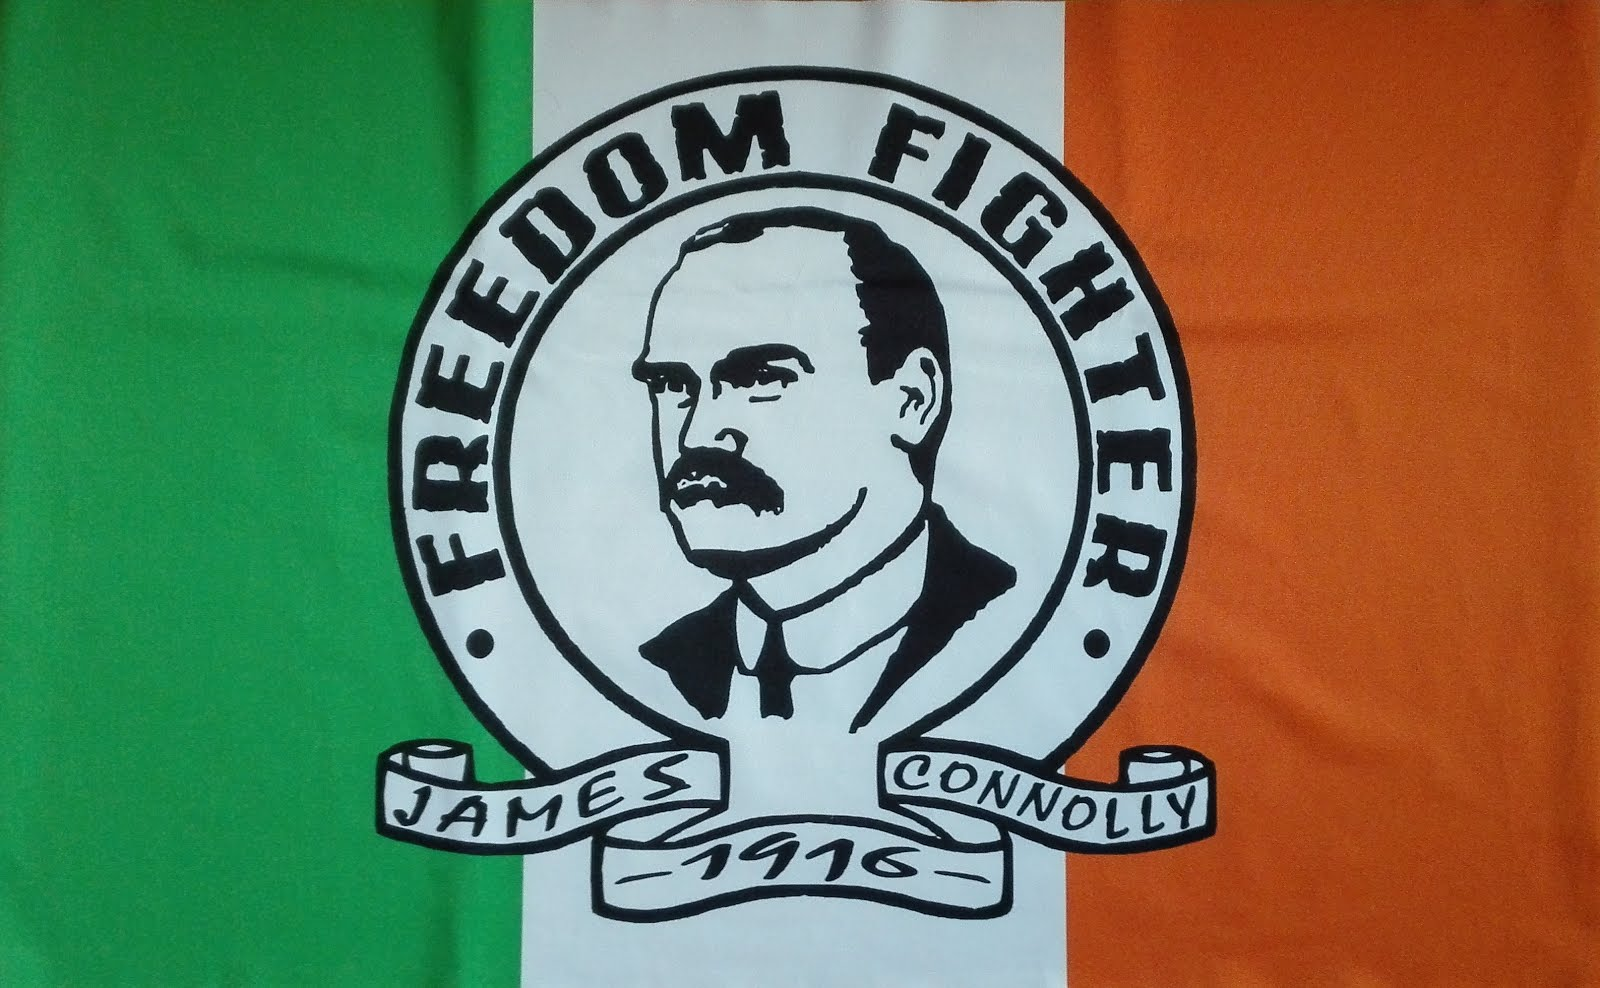 Banderola 'James Connolly - Tricolor' - 8€